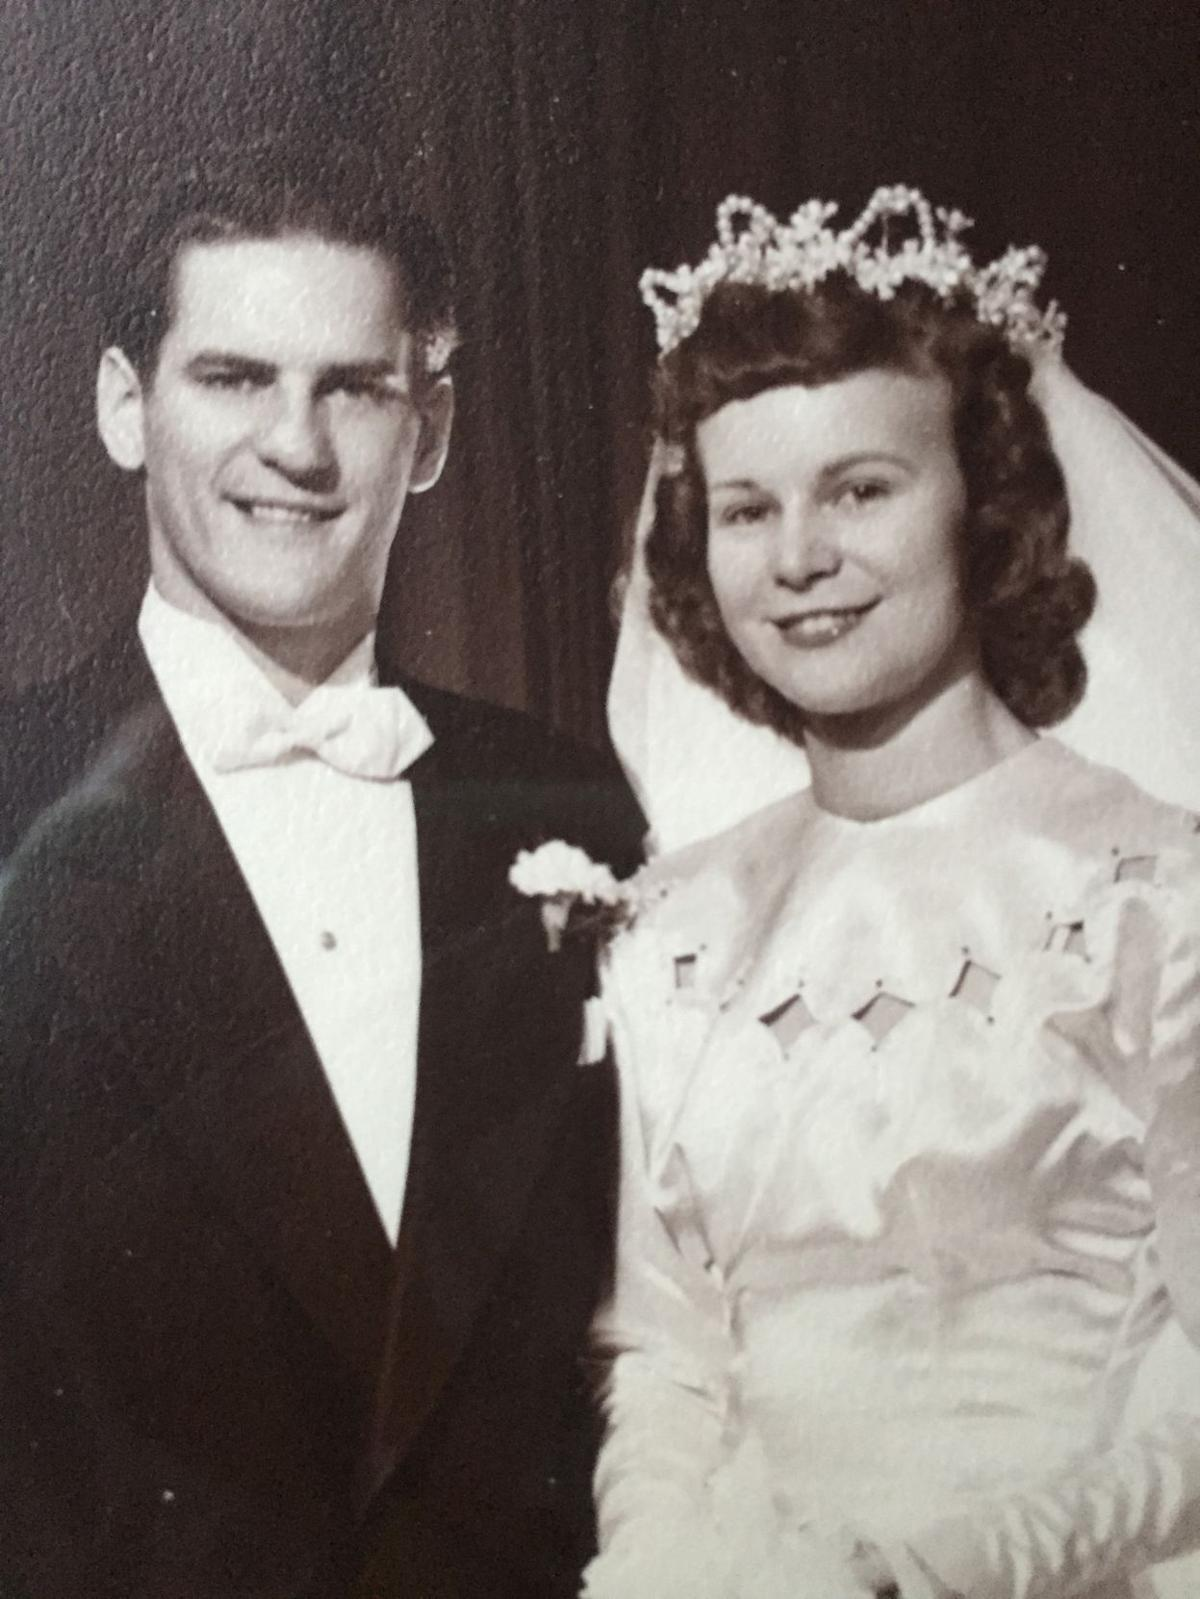 Celebrating 67 years together